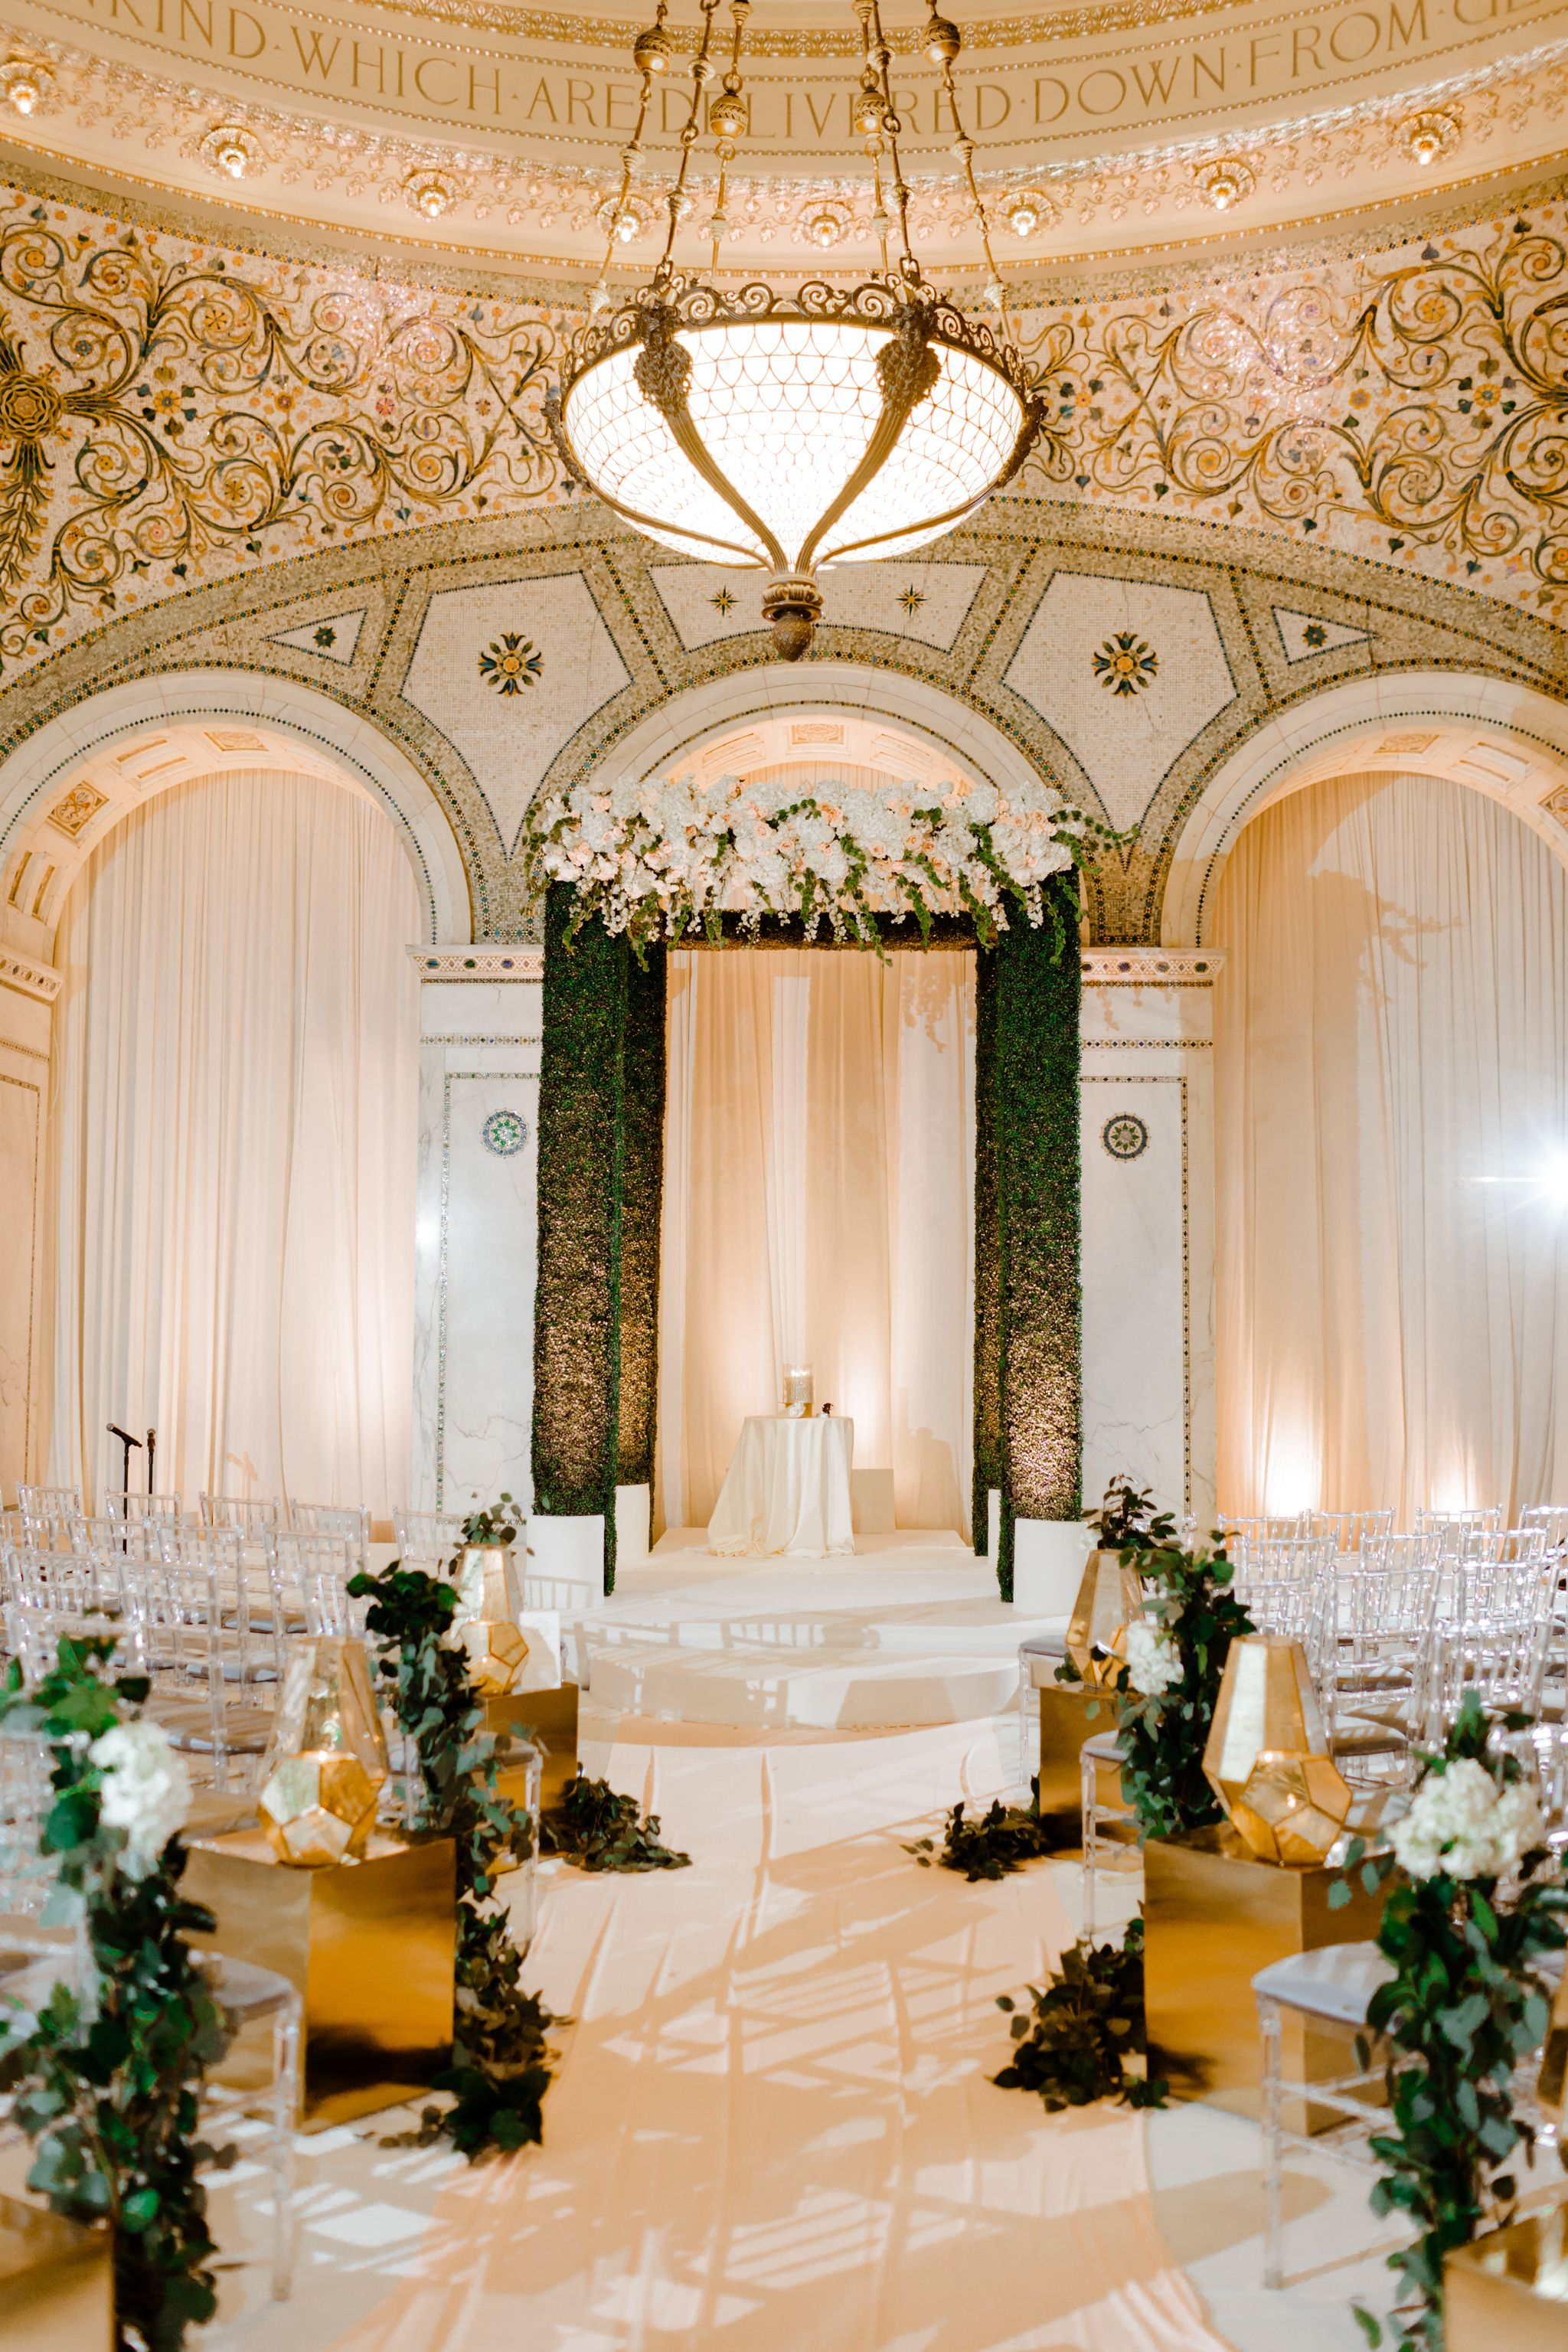 Pin By Kerri Quigley On Wedding Flowers In 2020 Chicago Cultural Center Wedding Chicago Cultural Center Chicago Wedding Venues